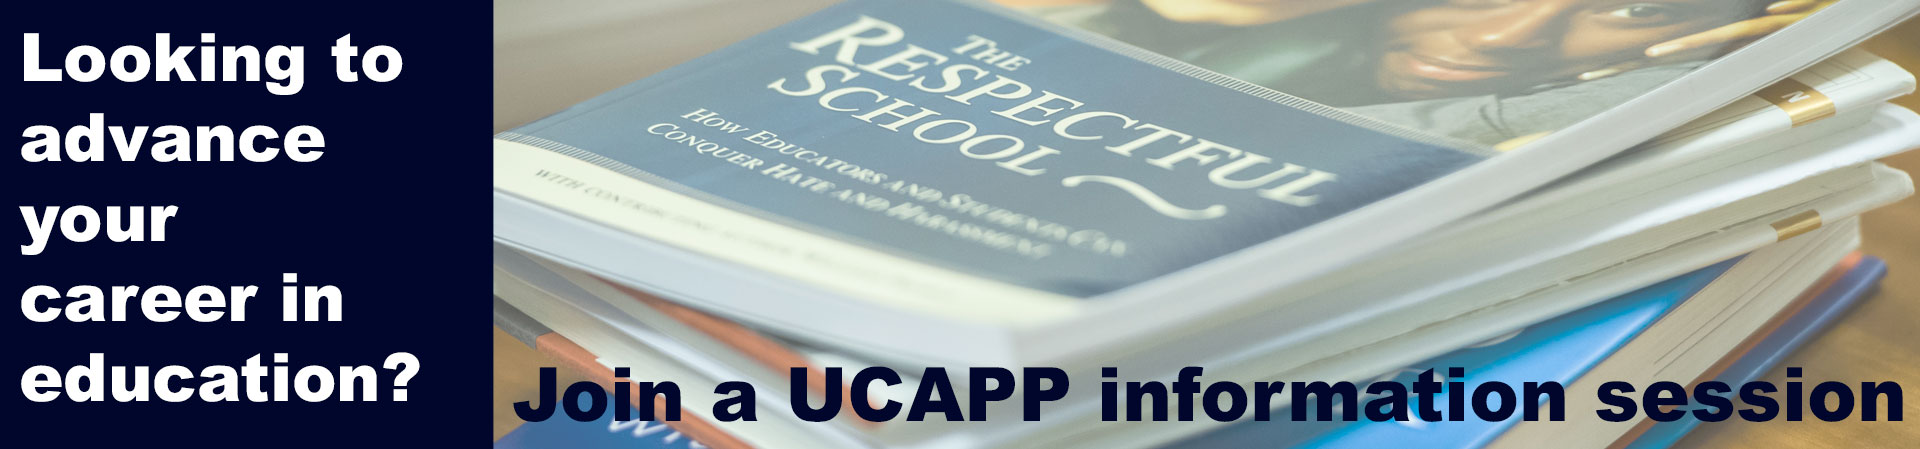 leadership book in background advertising attendance at UCAPP info sessions 2017